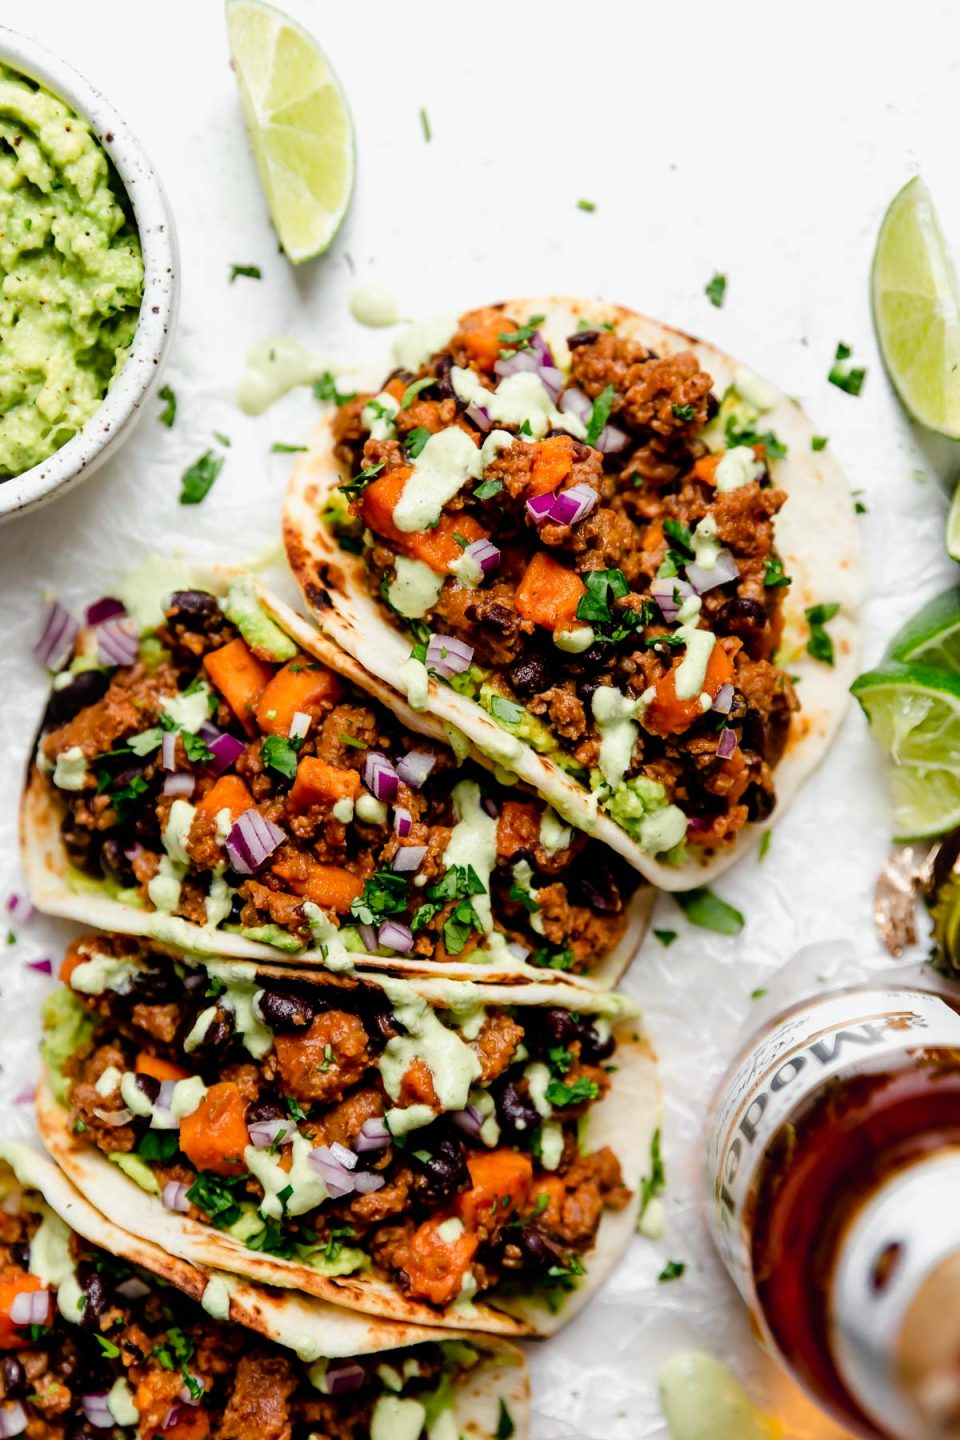 Close up photo of chorizo Sweet Potato Tacos arranged on a white surface. The tacos are topped with a drizzle of homemade cilantro lime crema. Surrounding the tacos are small bowls of taco toppings (pickled red onions, guacamole, crema, etc.) & a bottle of Modelo beer.